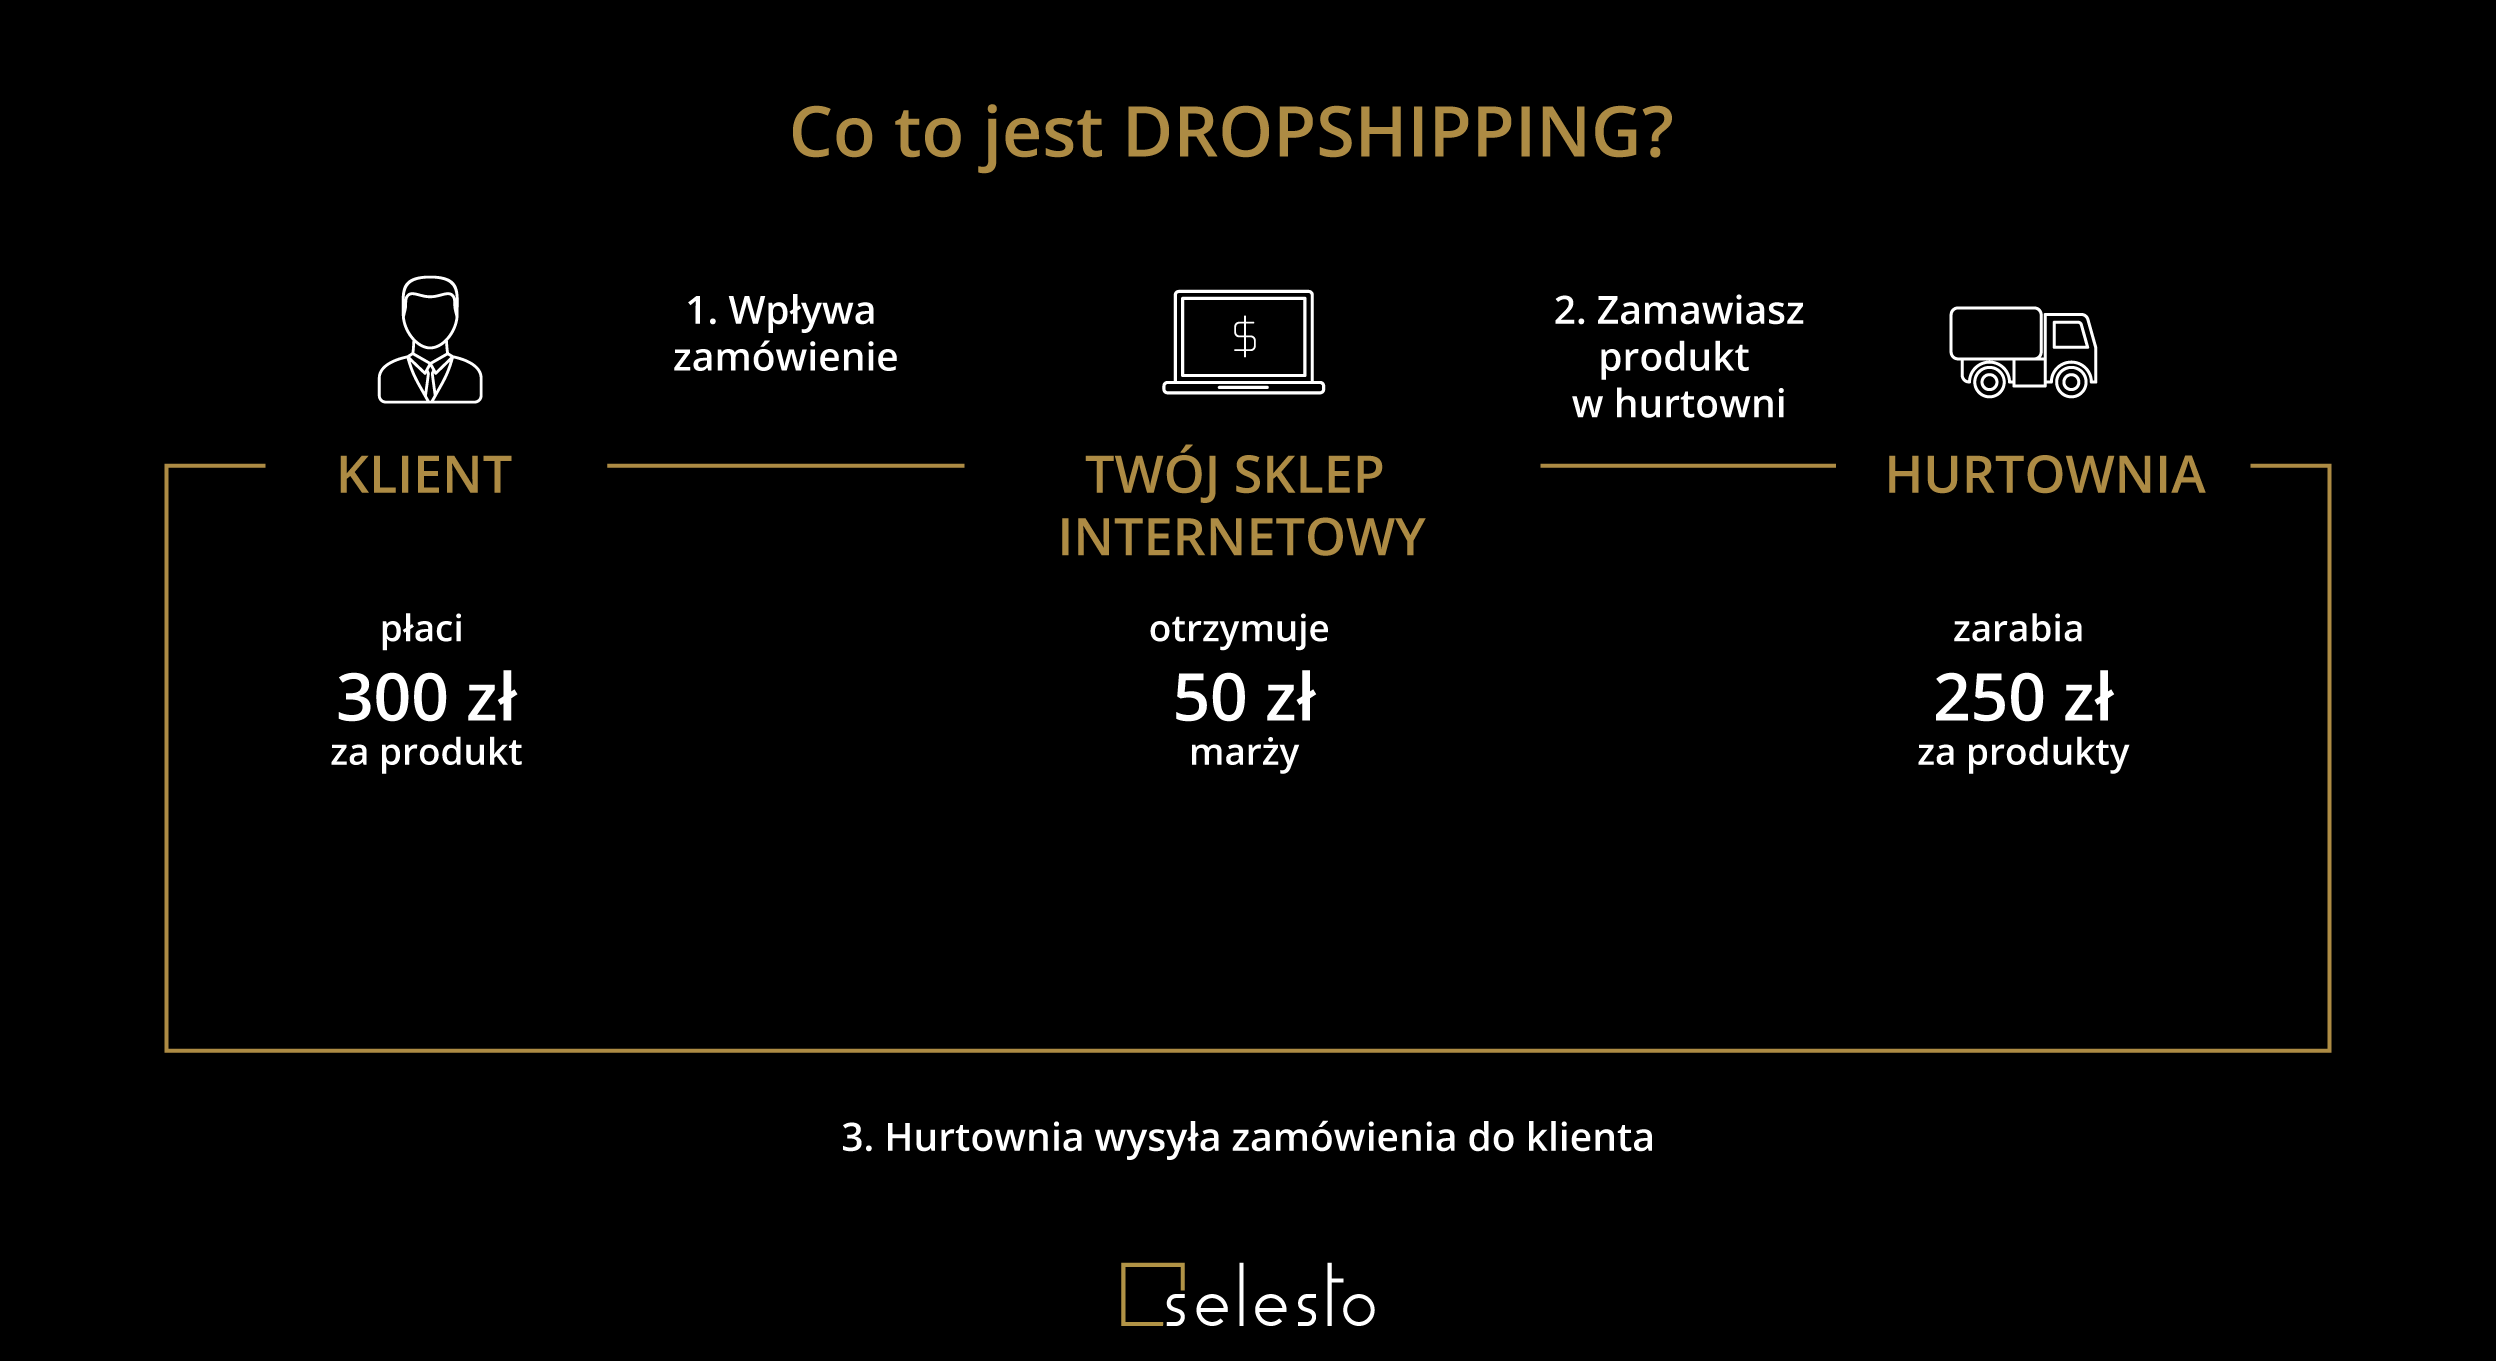 Co to jest dropshipping